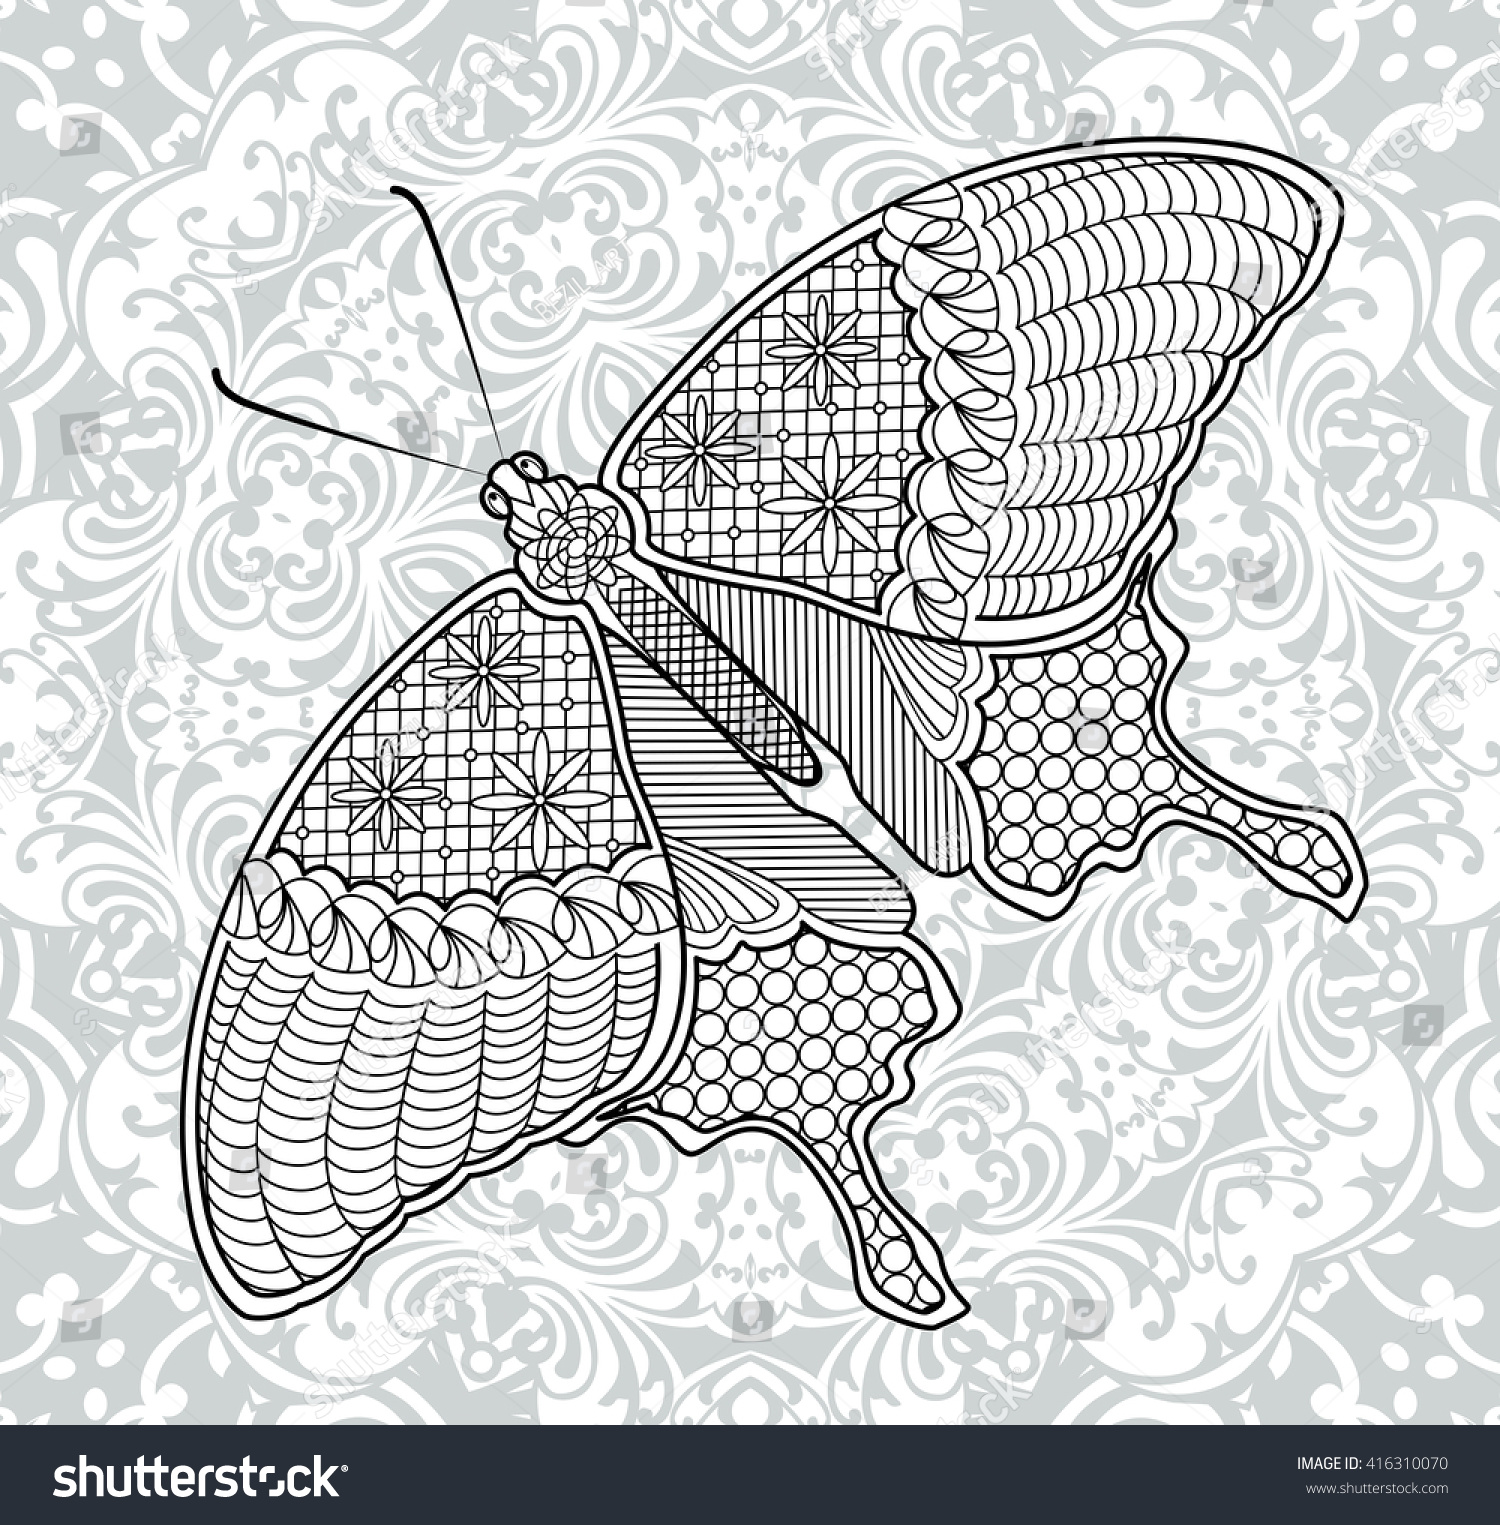 Coloring Pages Butterfly On The Background Of Mandala For Adults And Children Illustration In